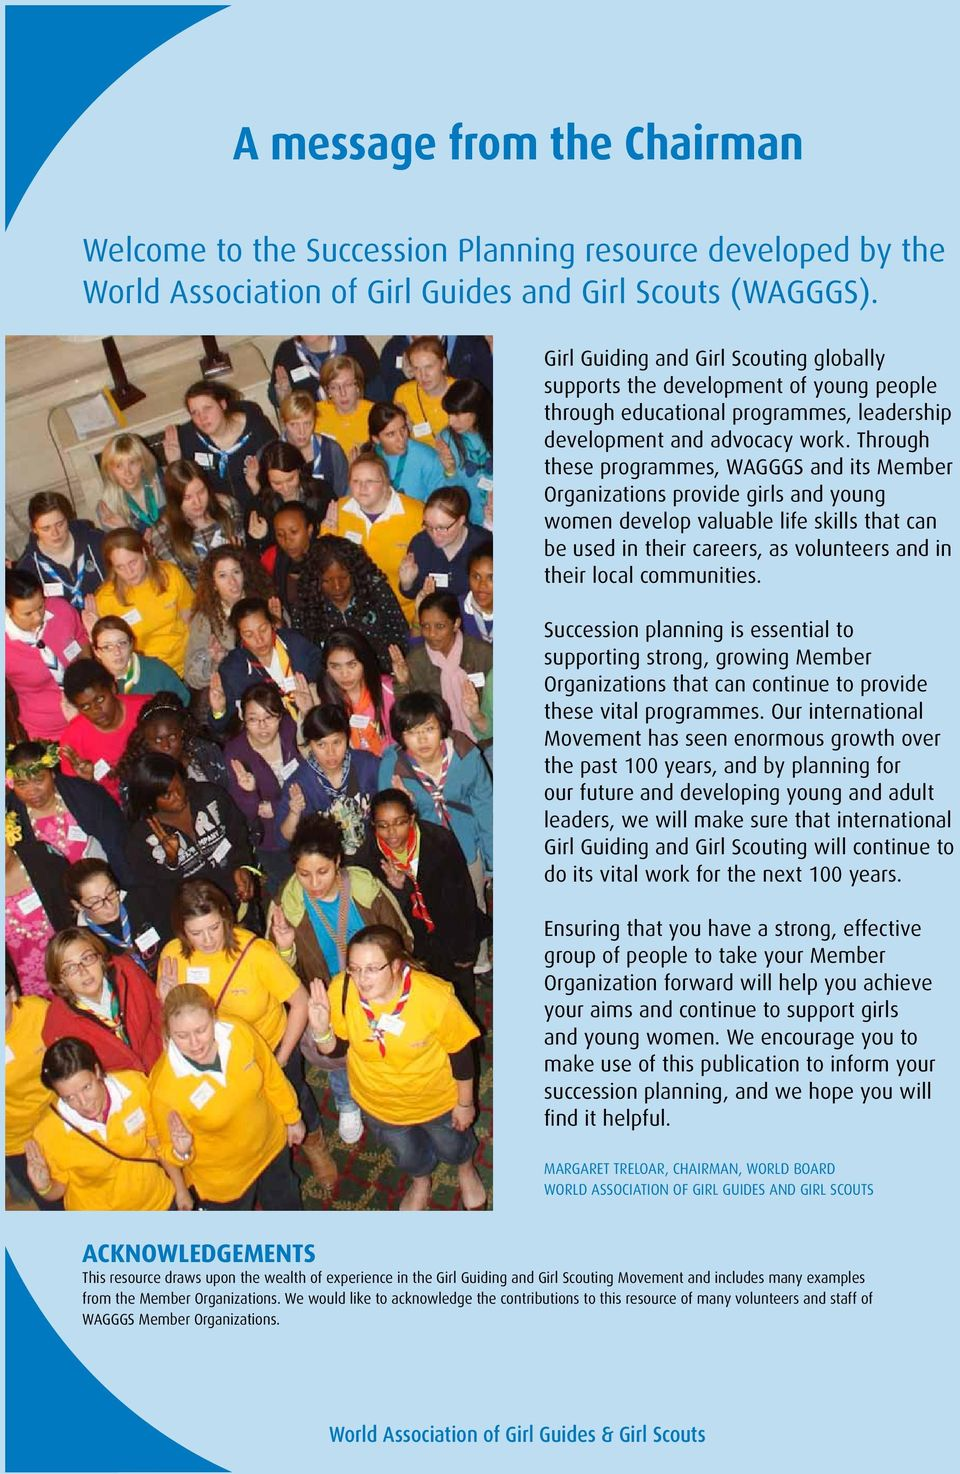 Through these programmes, WAGGGS and its Member Organizations provide girls and young women develop valuable life skills that can be used in their careers, as volunteers and in their local